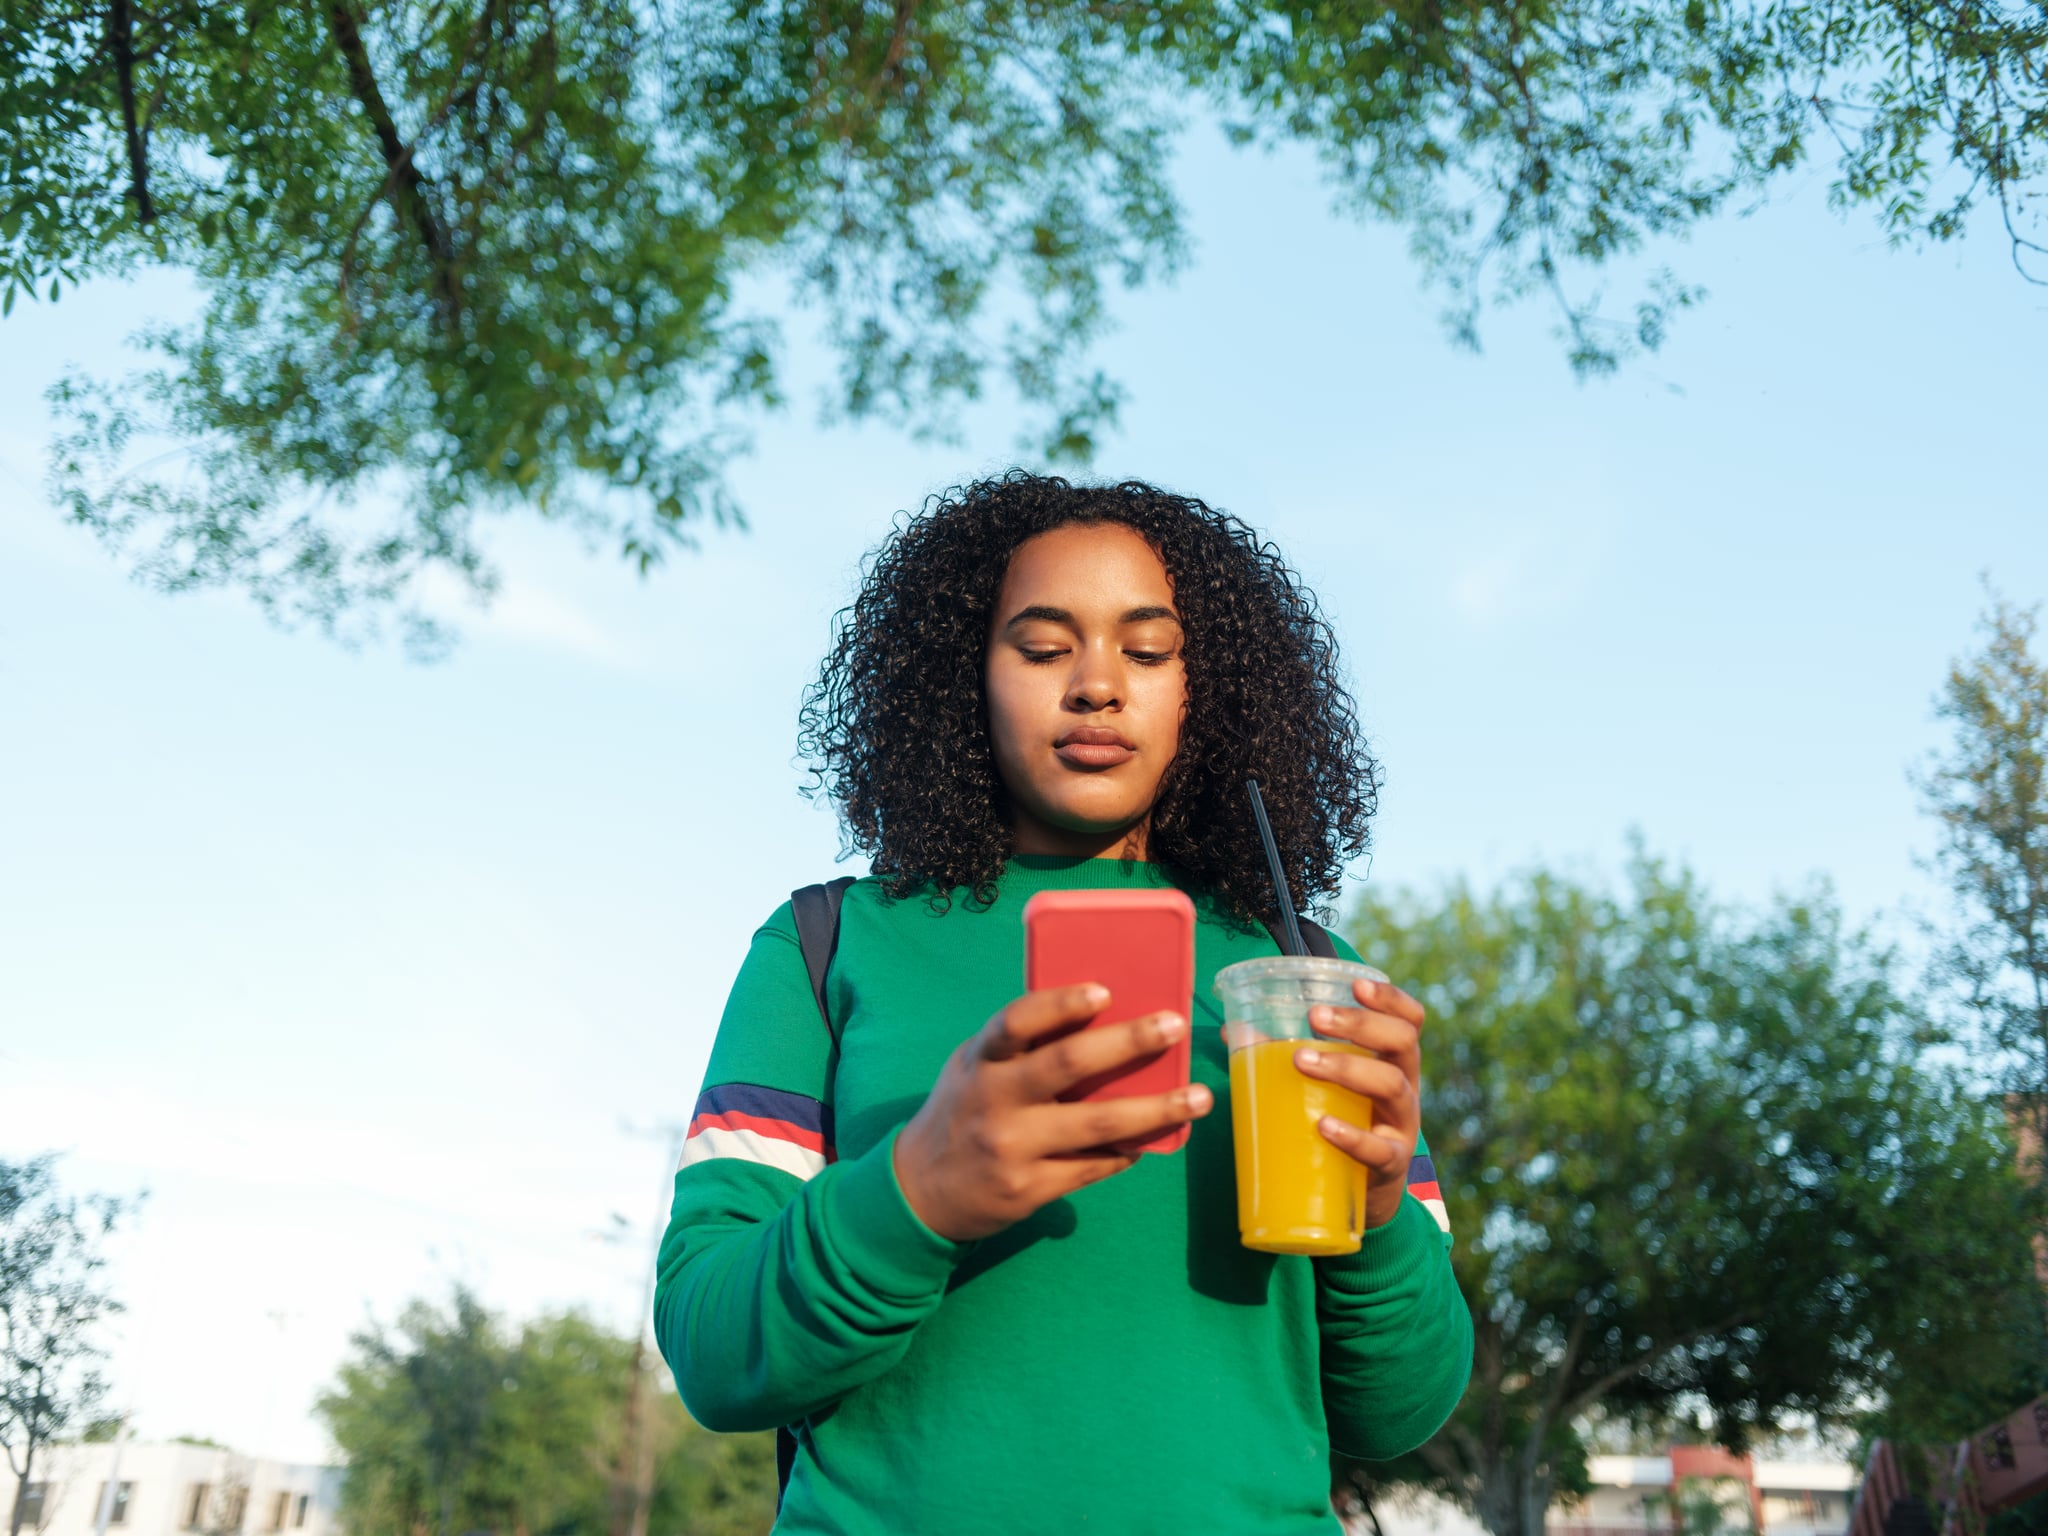 A college girl holding a healthy drink and texting outdoors.